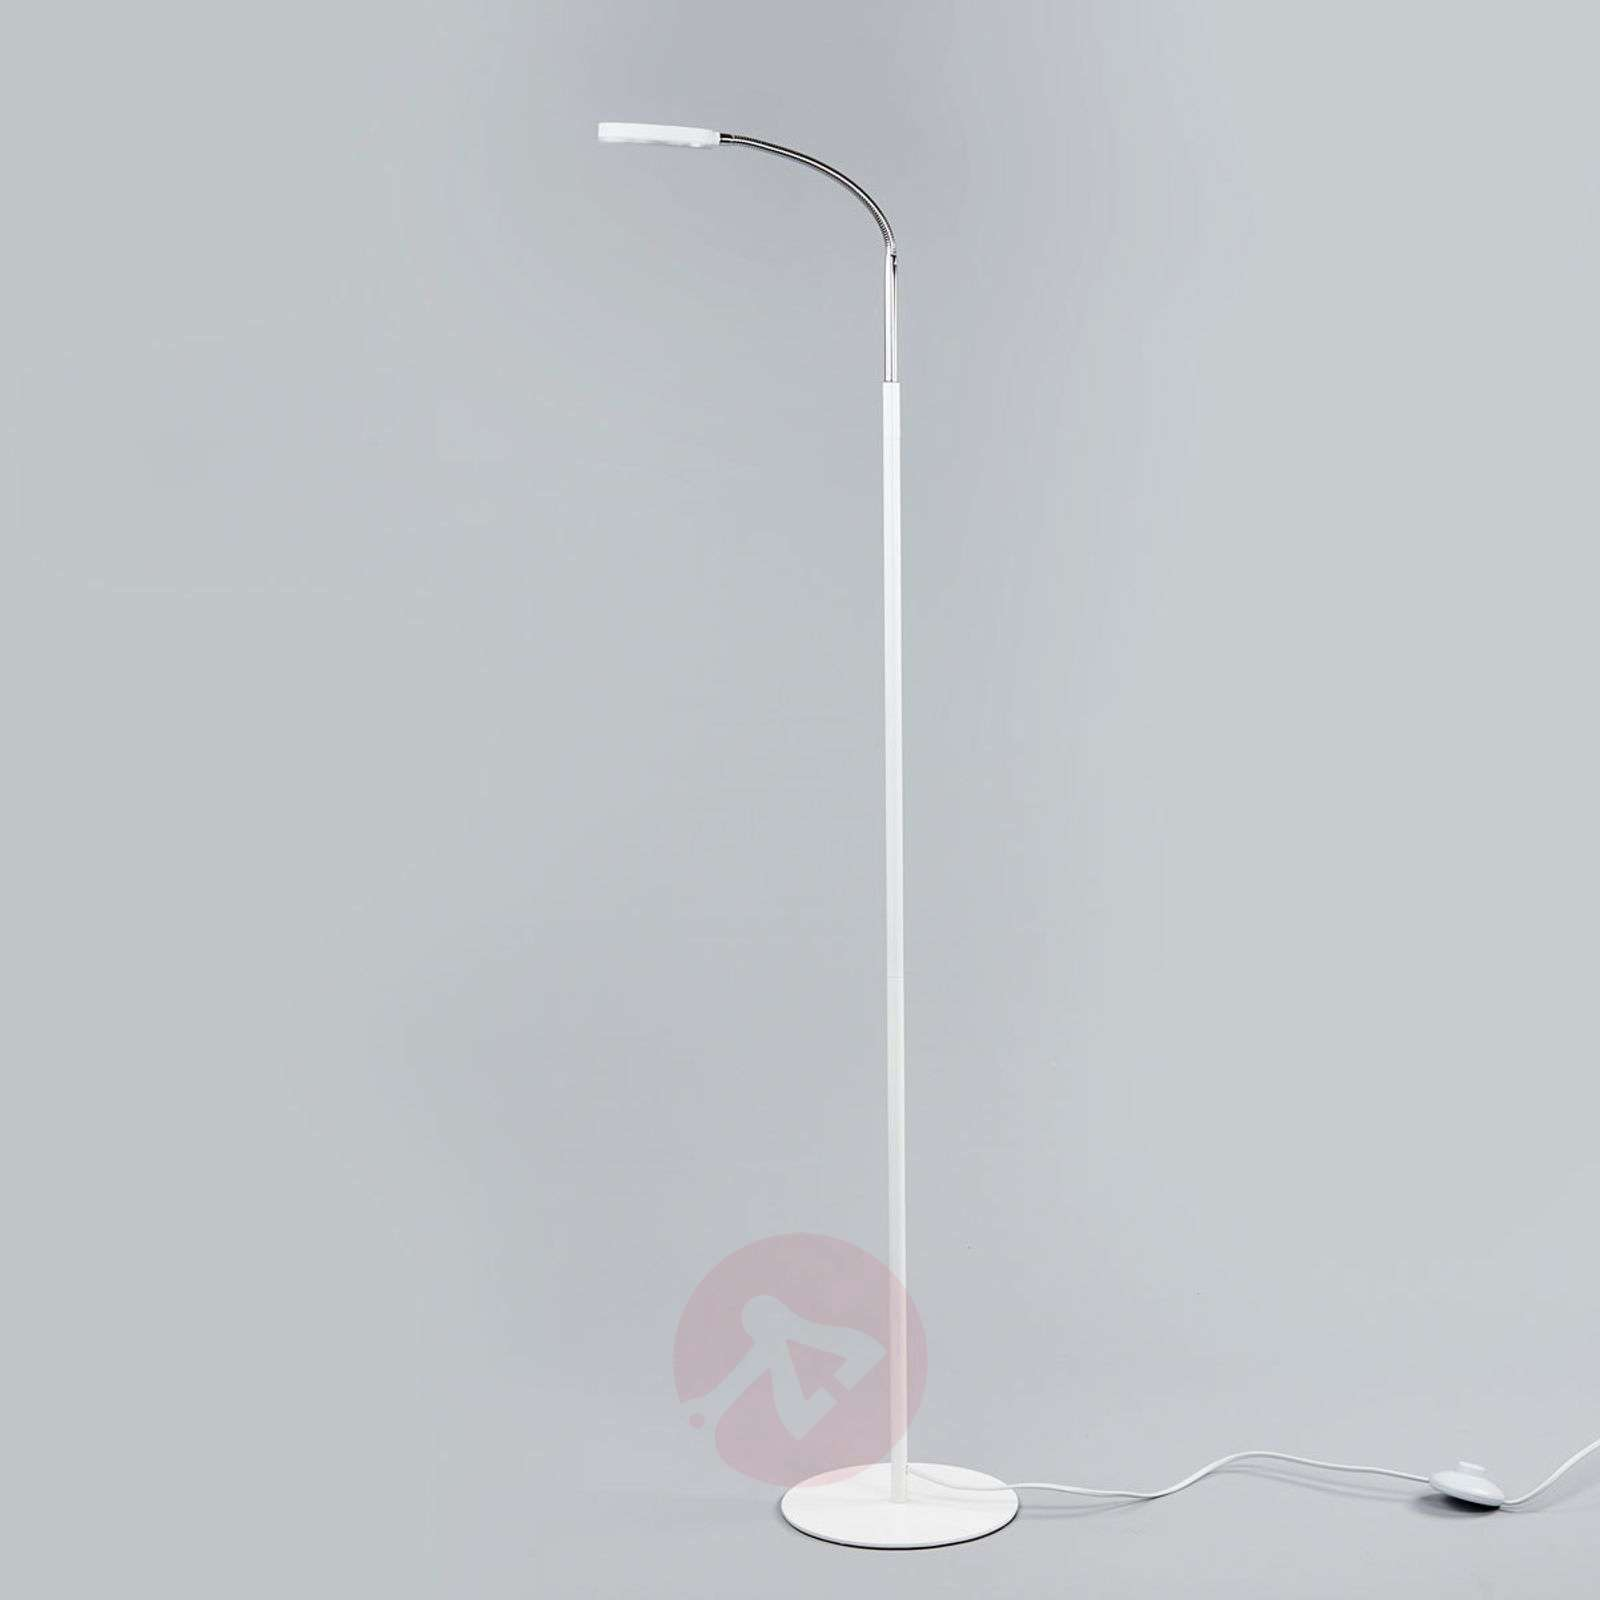 best room for height reading lamps walmart floor of lamp full standing bright super eyes living size adjustable floors gooseneck